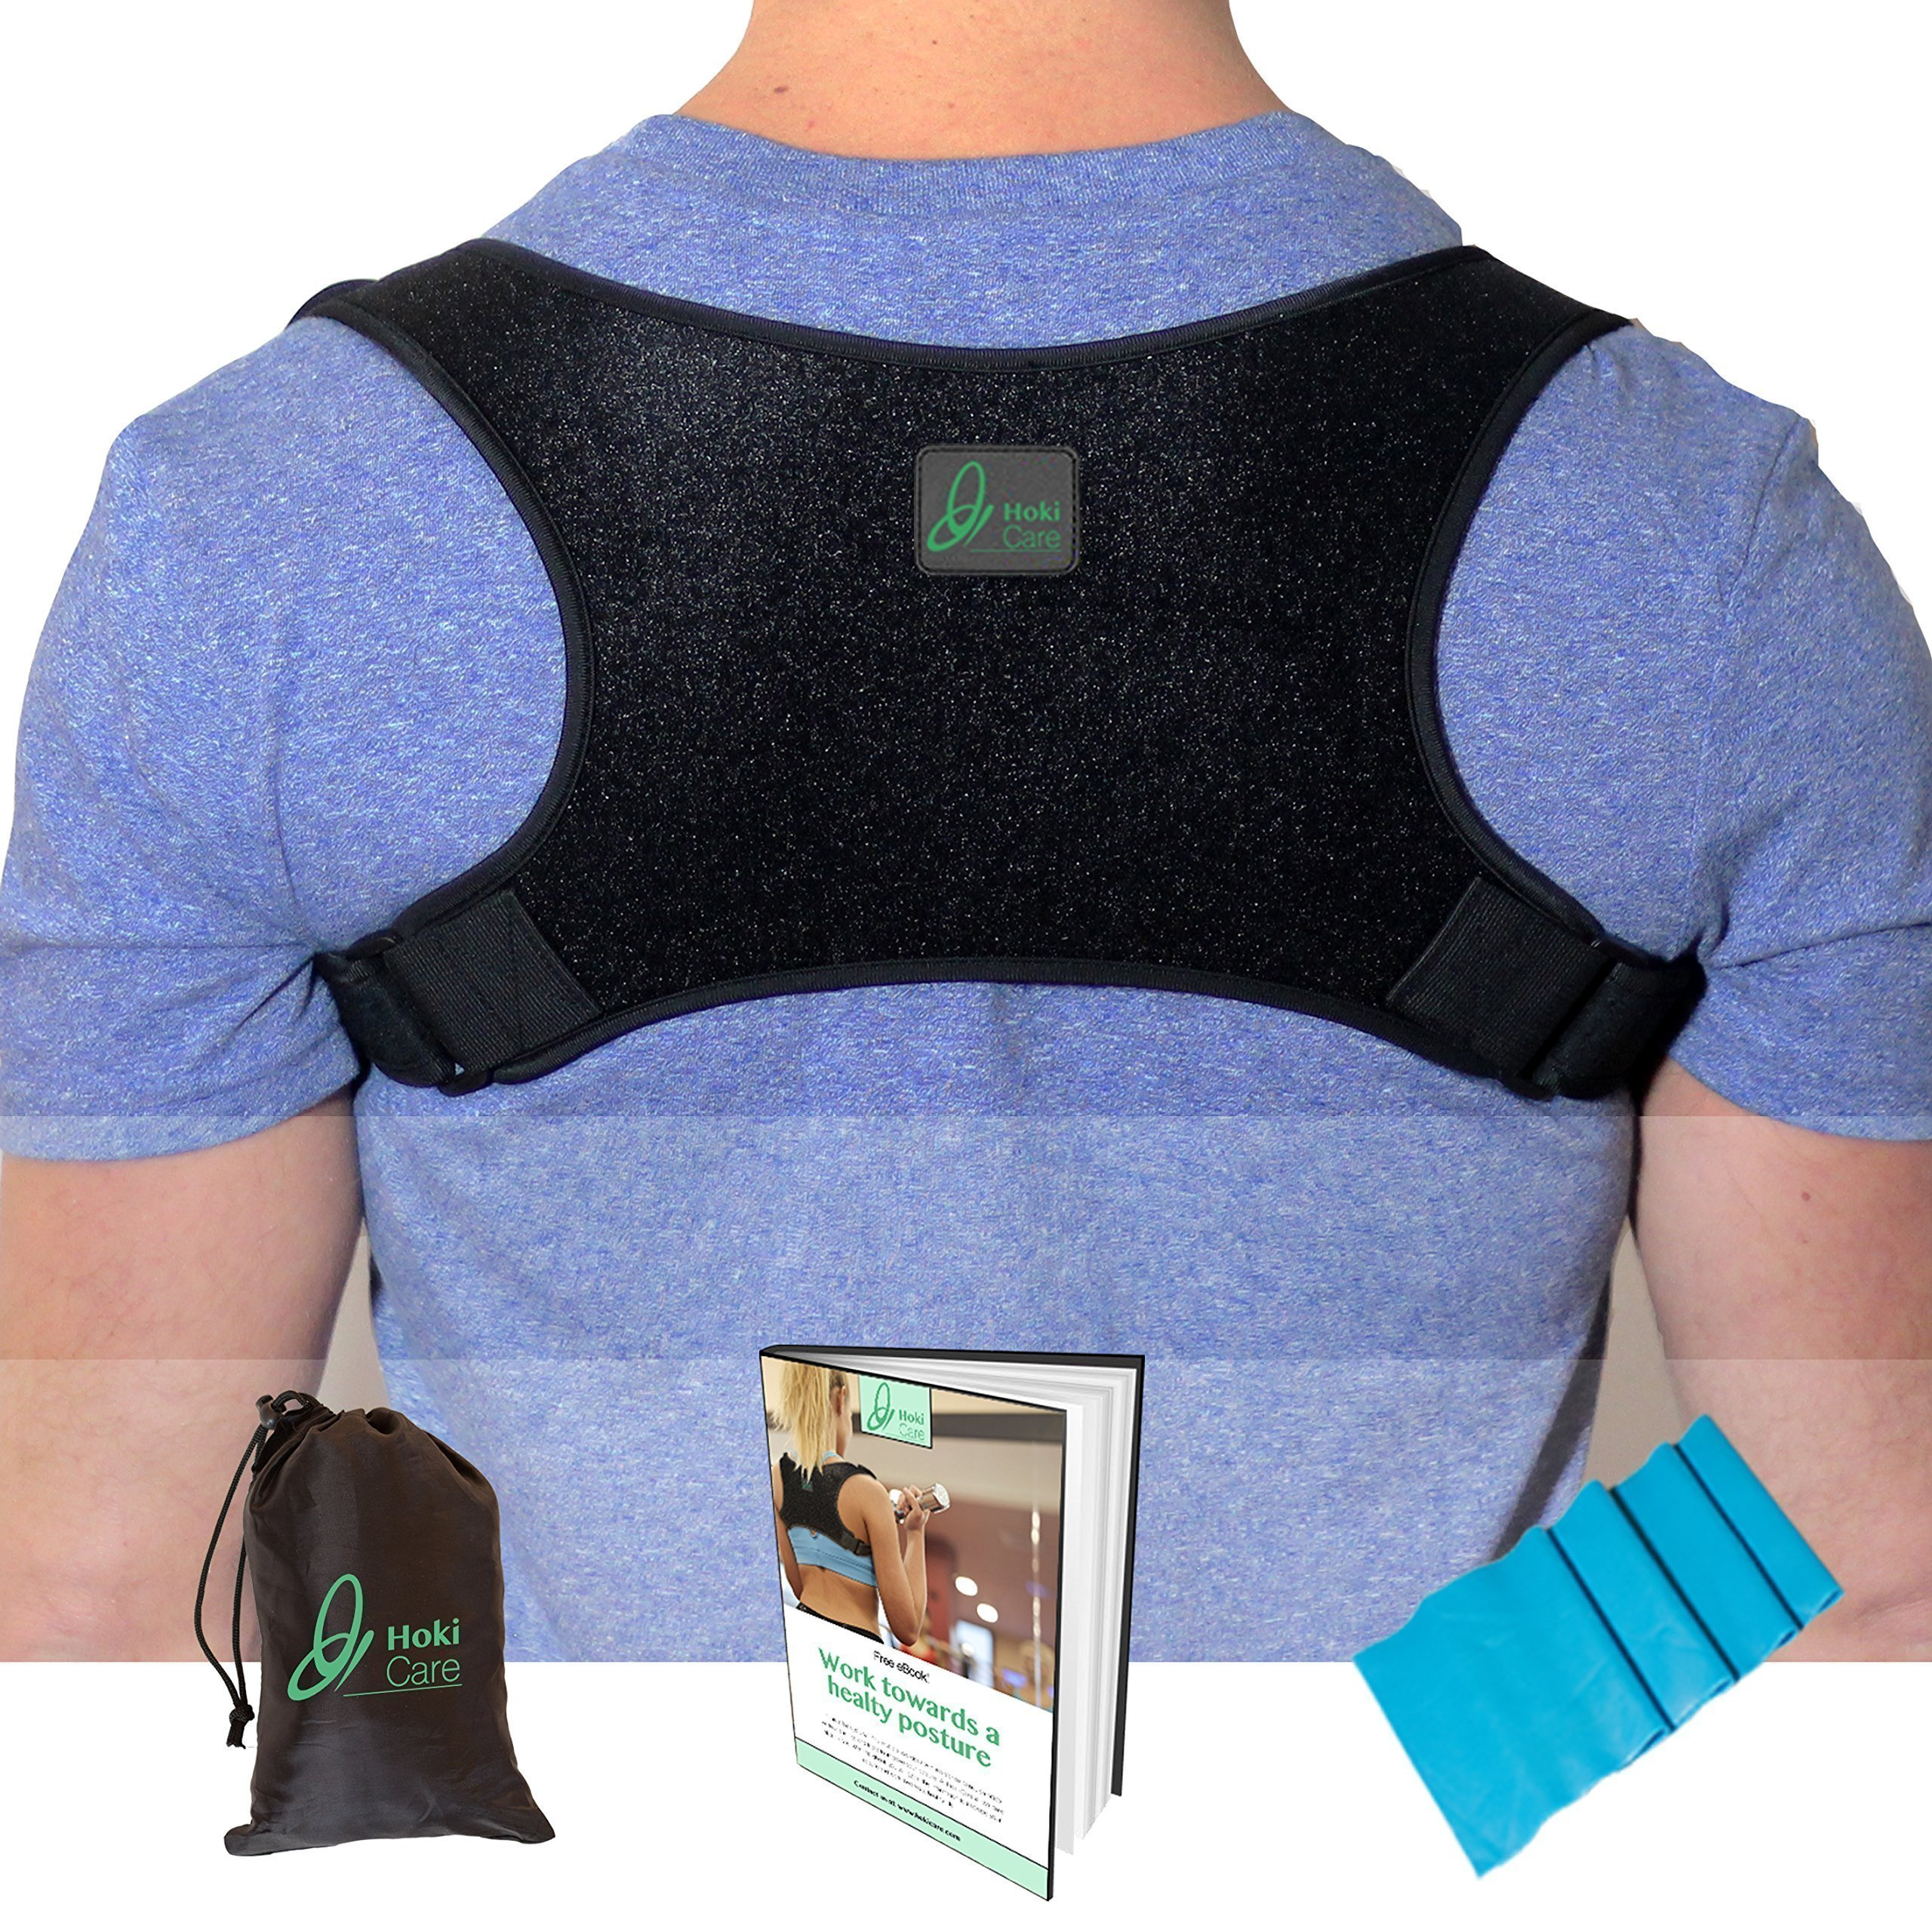 Hoki Care Posture Corrector Device For Men & Women | Upper Back Brace Thoracic Spine Support To Prevent Slouching | Comfortable & Invisible Under Clothes | Discreet One Size Fits All Design |